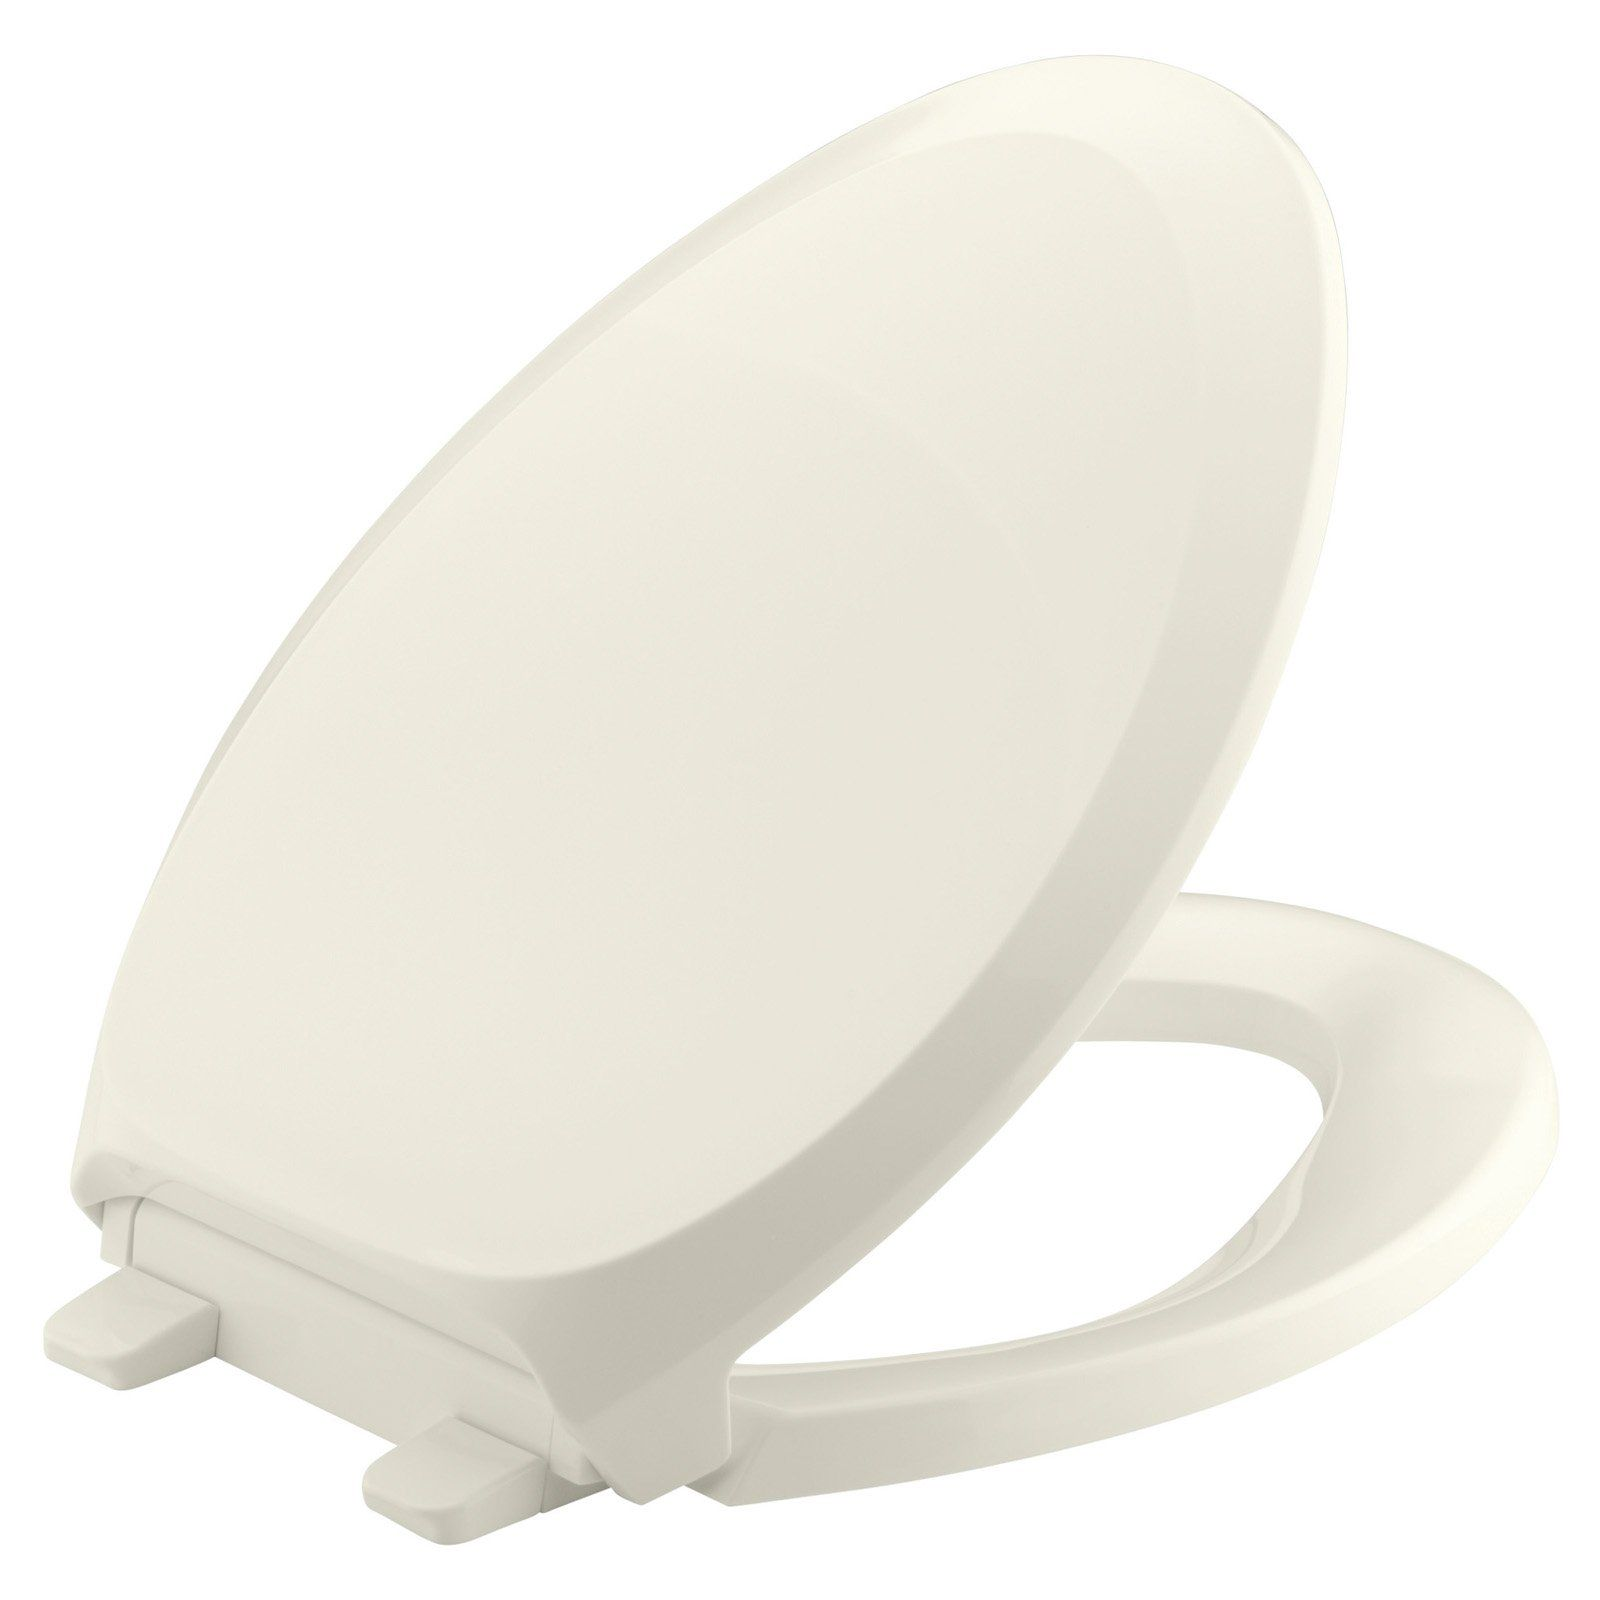 Fantastic Kohler French Curve Quiet Close With Grip Tight Elongated Short Links Chair Design For Home Short Linksinfo